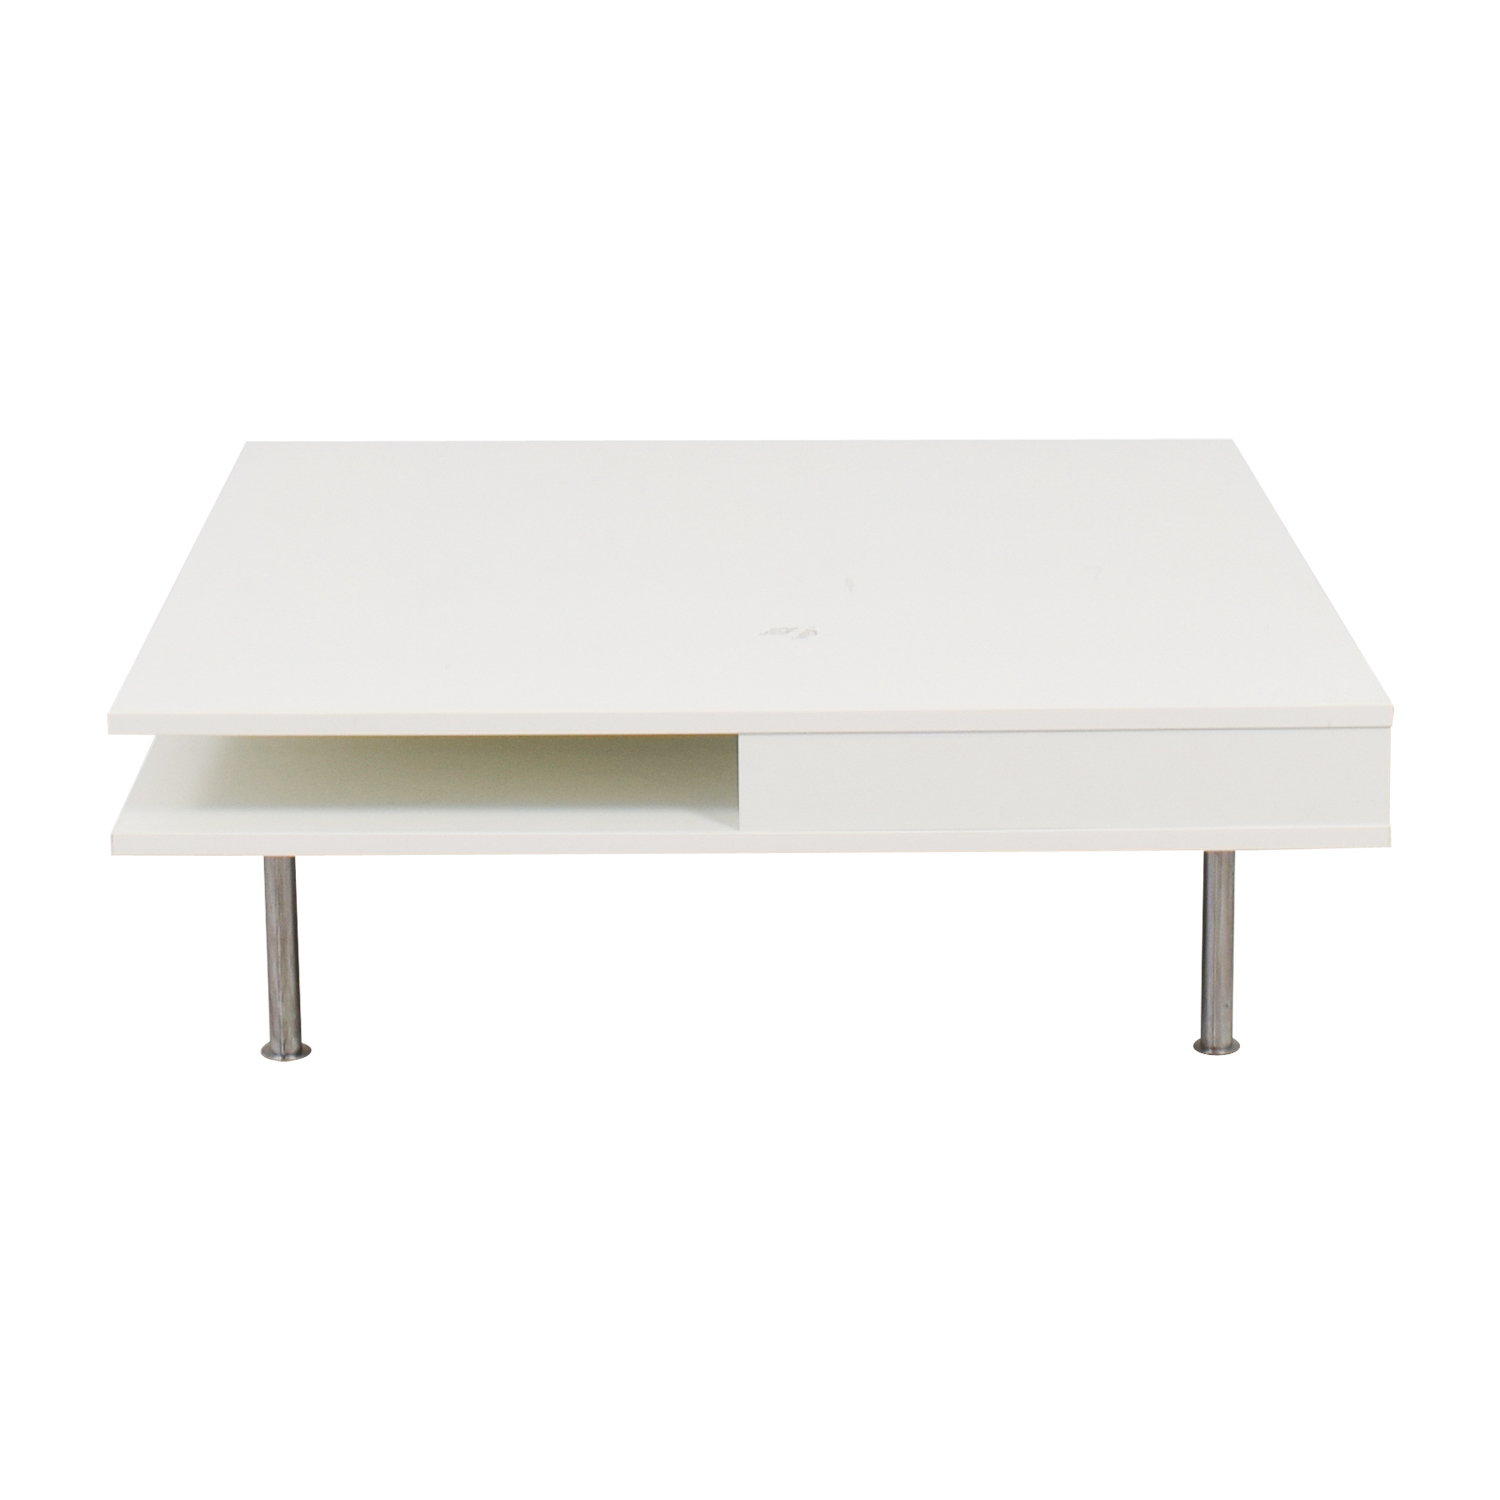 Coffee Table Ikea.77 Off Ikea Ikea Tofteryd Coffee Table Tables